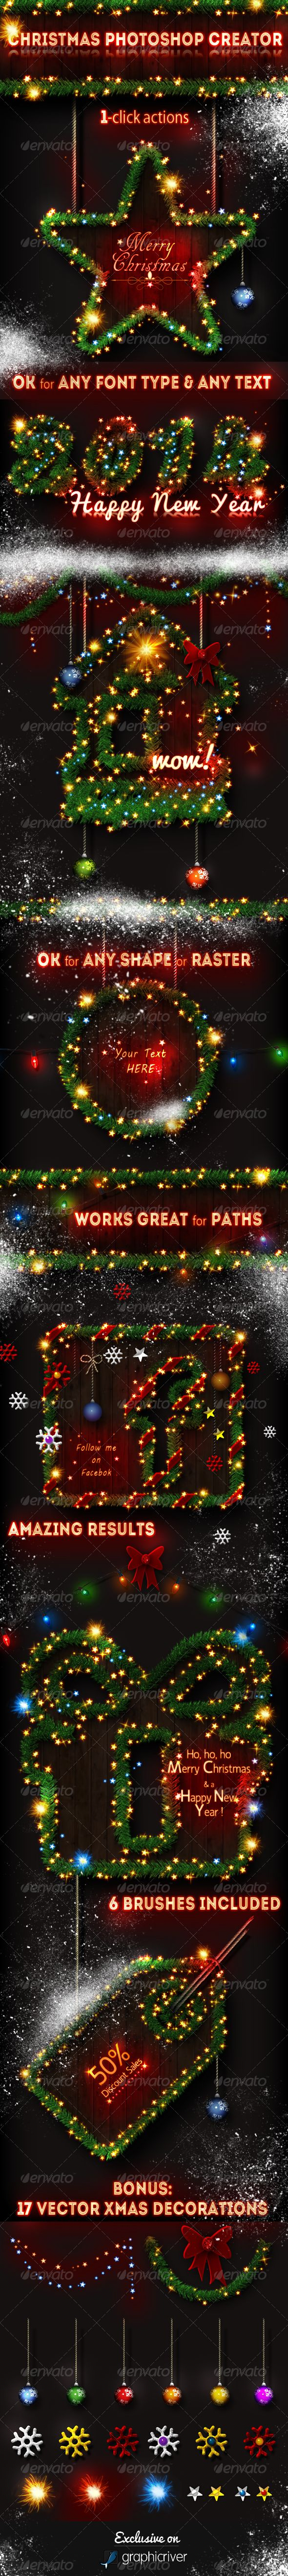 Christmas Tree Photoshop Creator  #GraphicRiver         Christmas Tree Photoshop Creator by psddude – This set contains 2 Photoshop actions that will allow you to create realistic Christmas tree effects out of any text, shape, raster or hand drawn path.   The Christmas tree effect can easily be modified and customized after the action is ended. You can use one of the 6 Xmas brushes included in this pack: stars, snow, fireworks, glow, etc. The pack also comes with 17 vector Christmas tree…